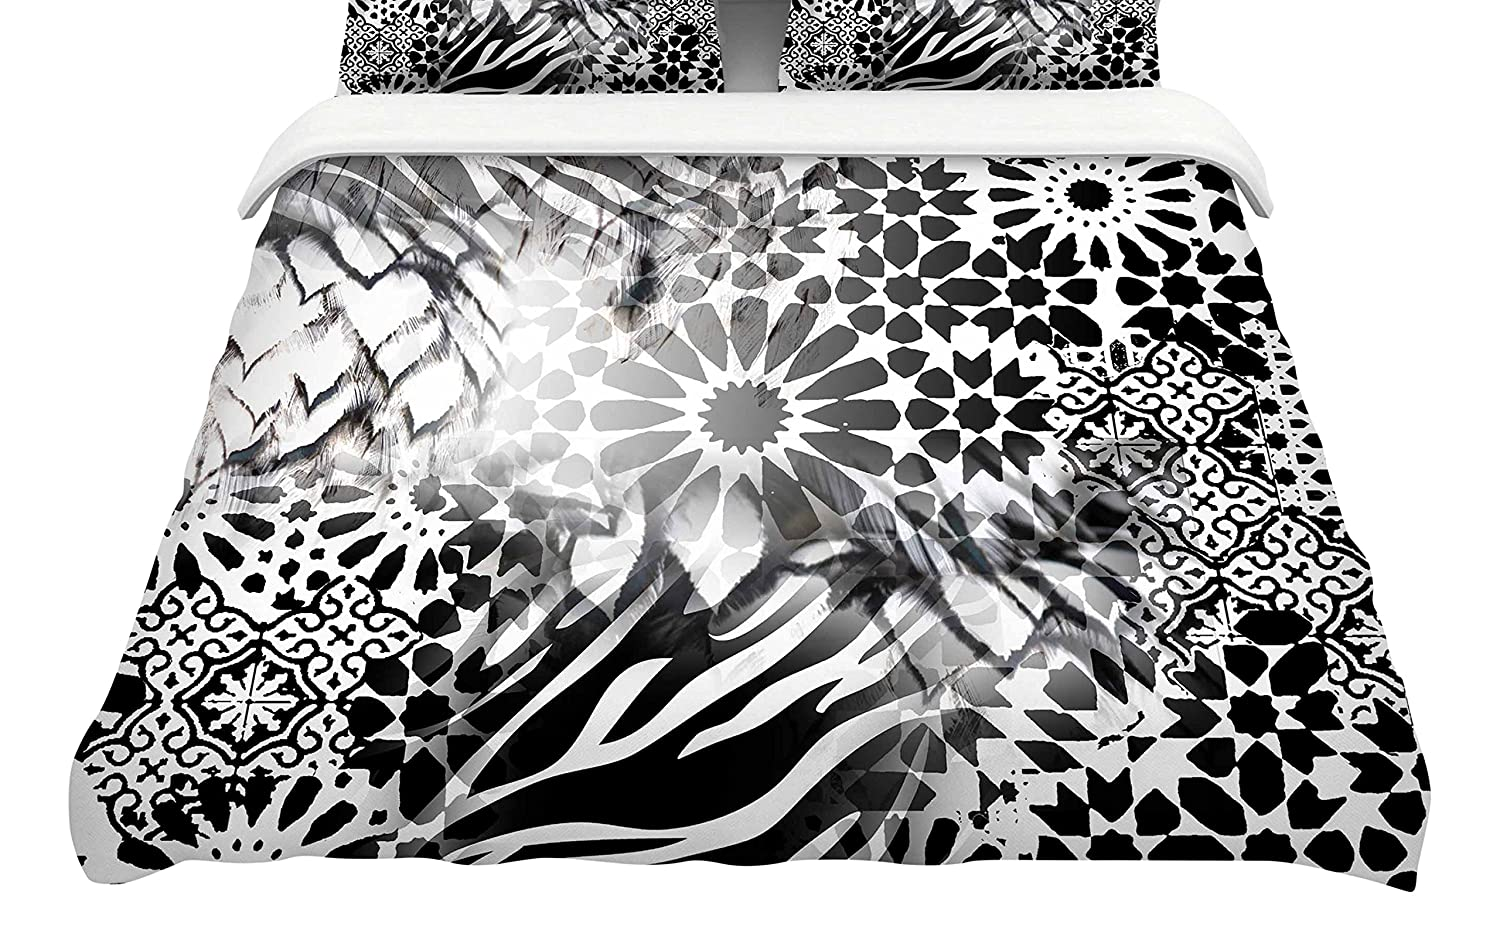 Kess InHouse Victoria Krupp Out of Morocco Featherweight Queen Duvet Cover, 88 x 88,